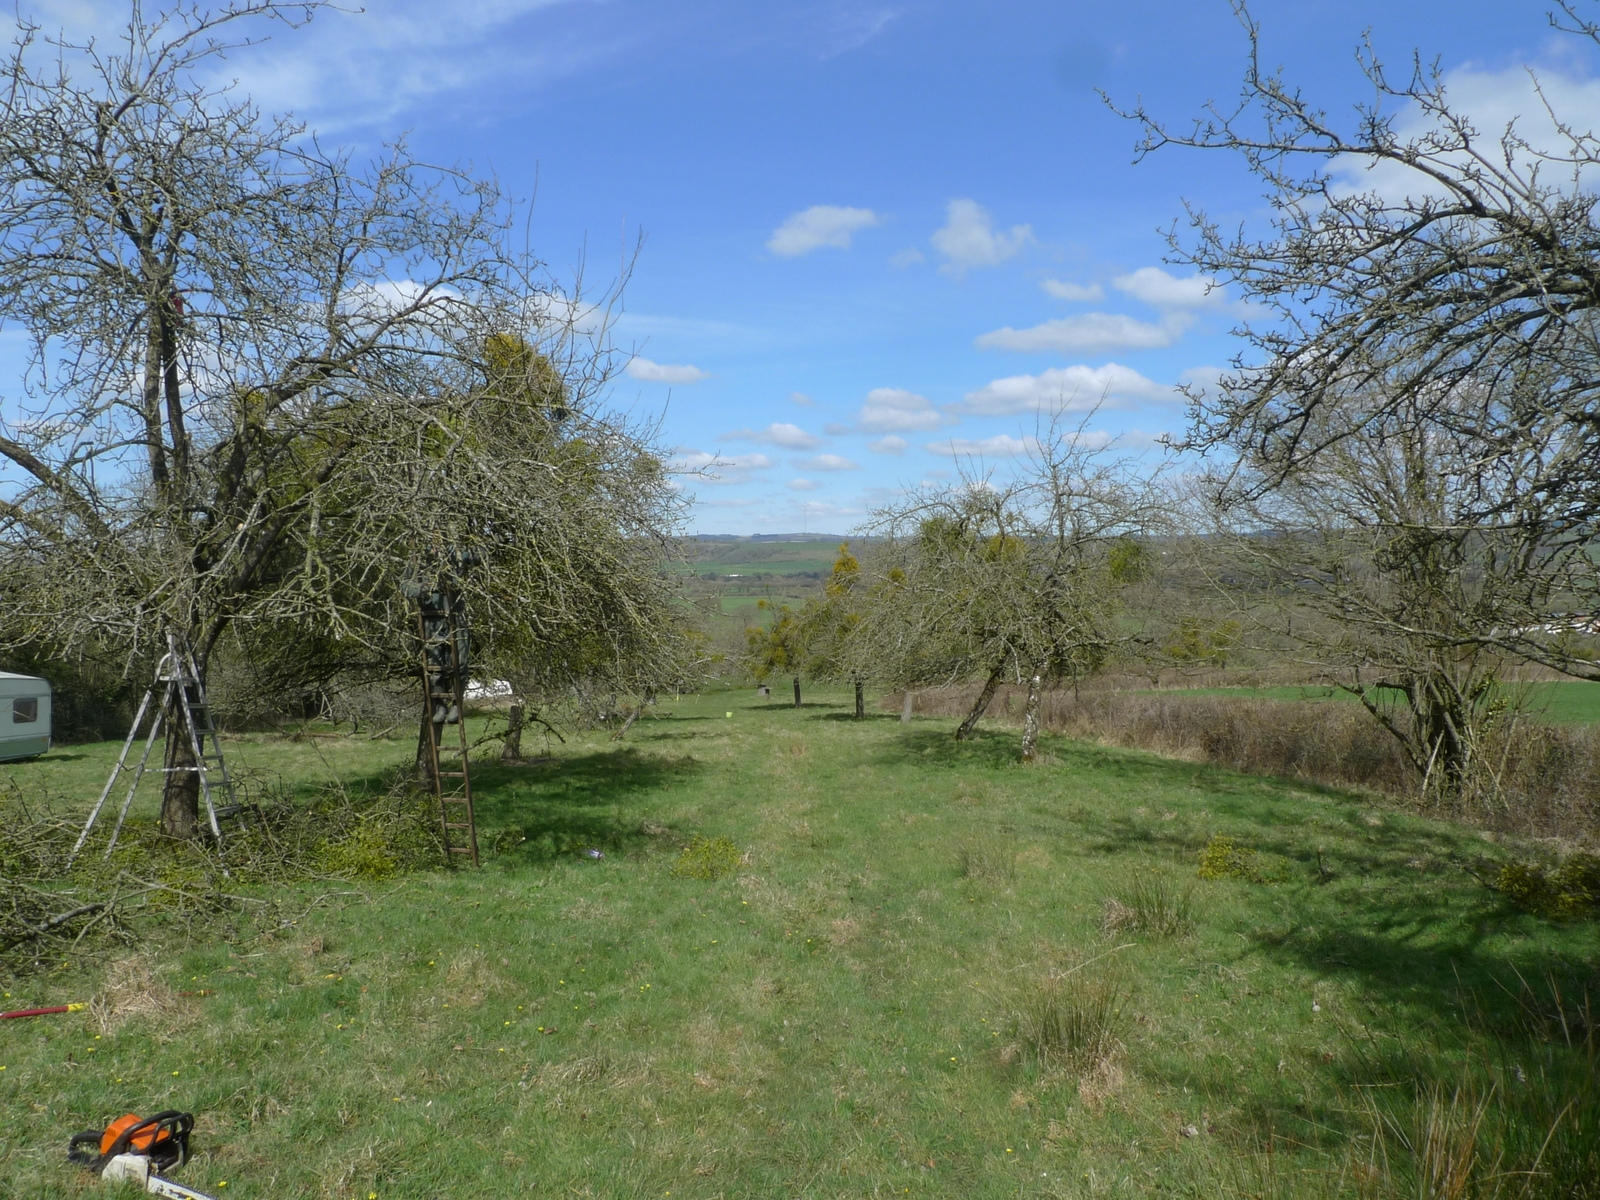 Spring Orchard  - Removing Mistletoe at this Orchard in West Pennard